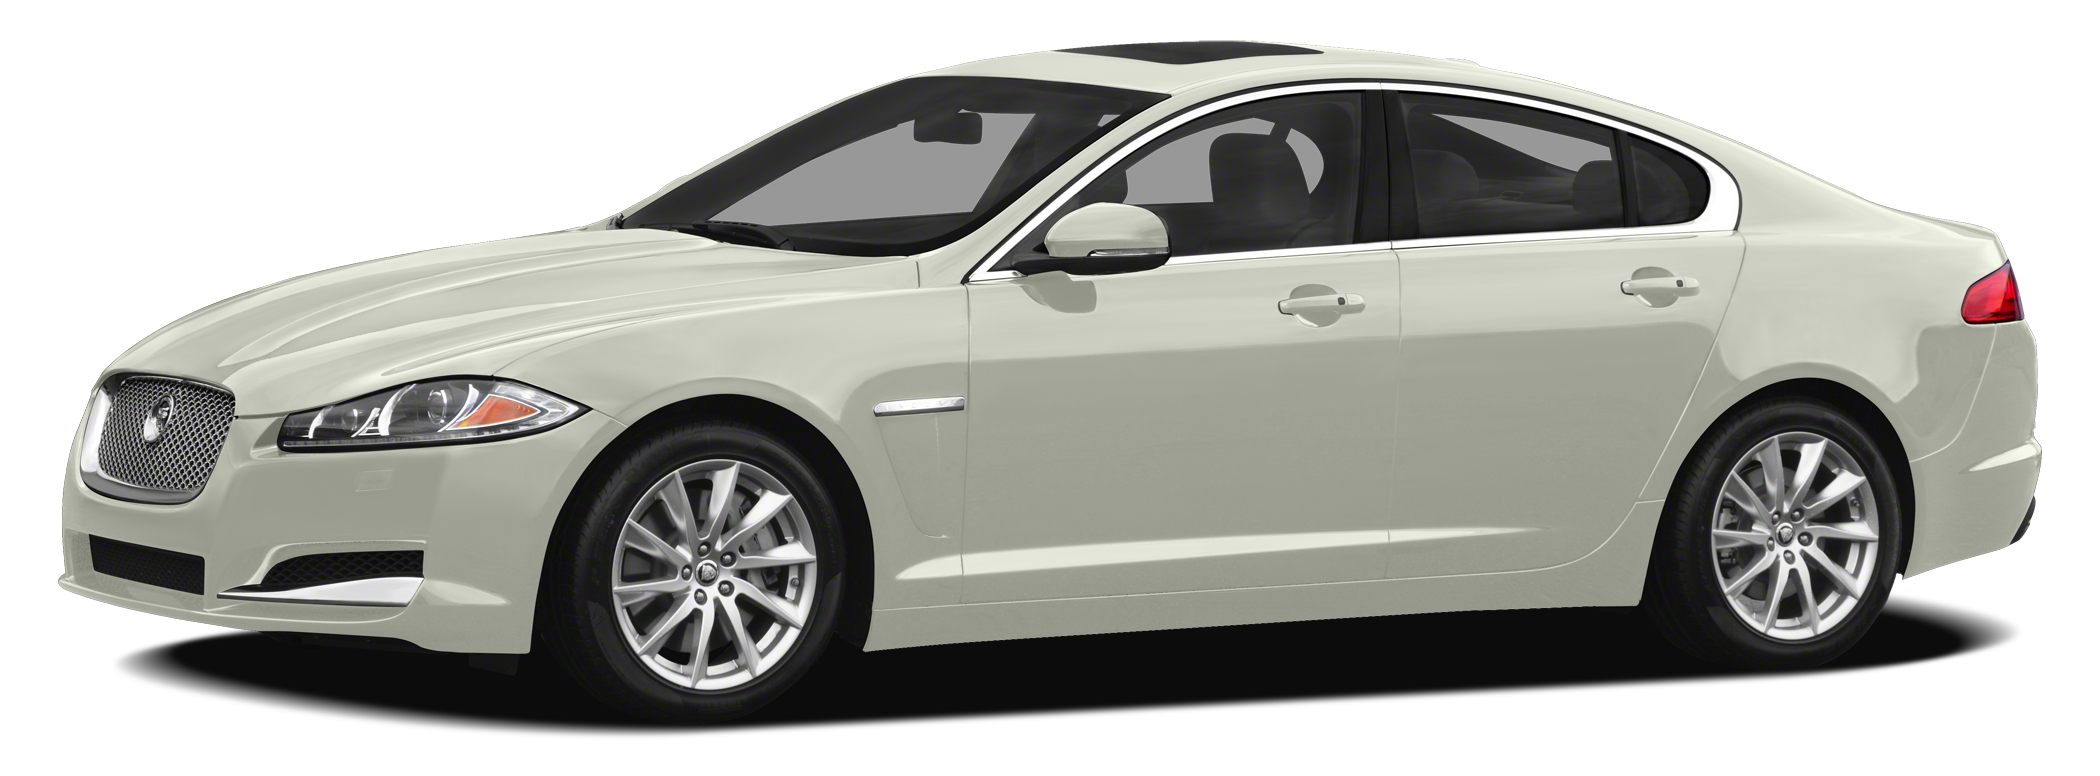 2012 Jaguar XF Base LOW LOW Lowest price guaranteed WE have NO SALESMEN FOLLOWING YOU AROUND we